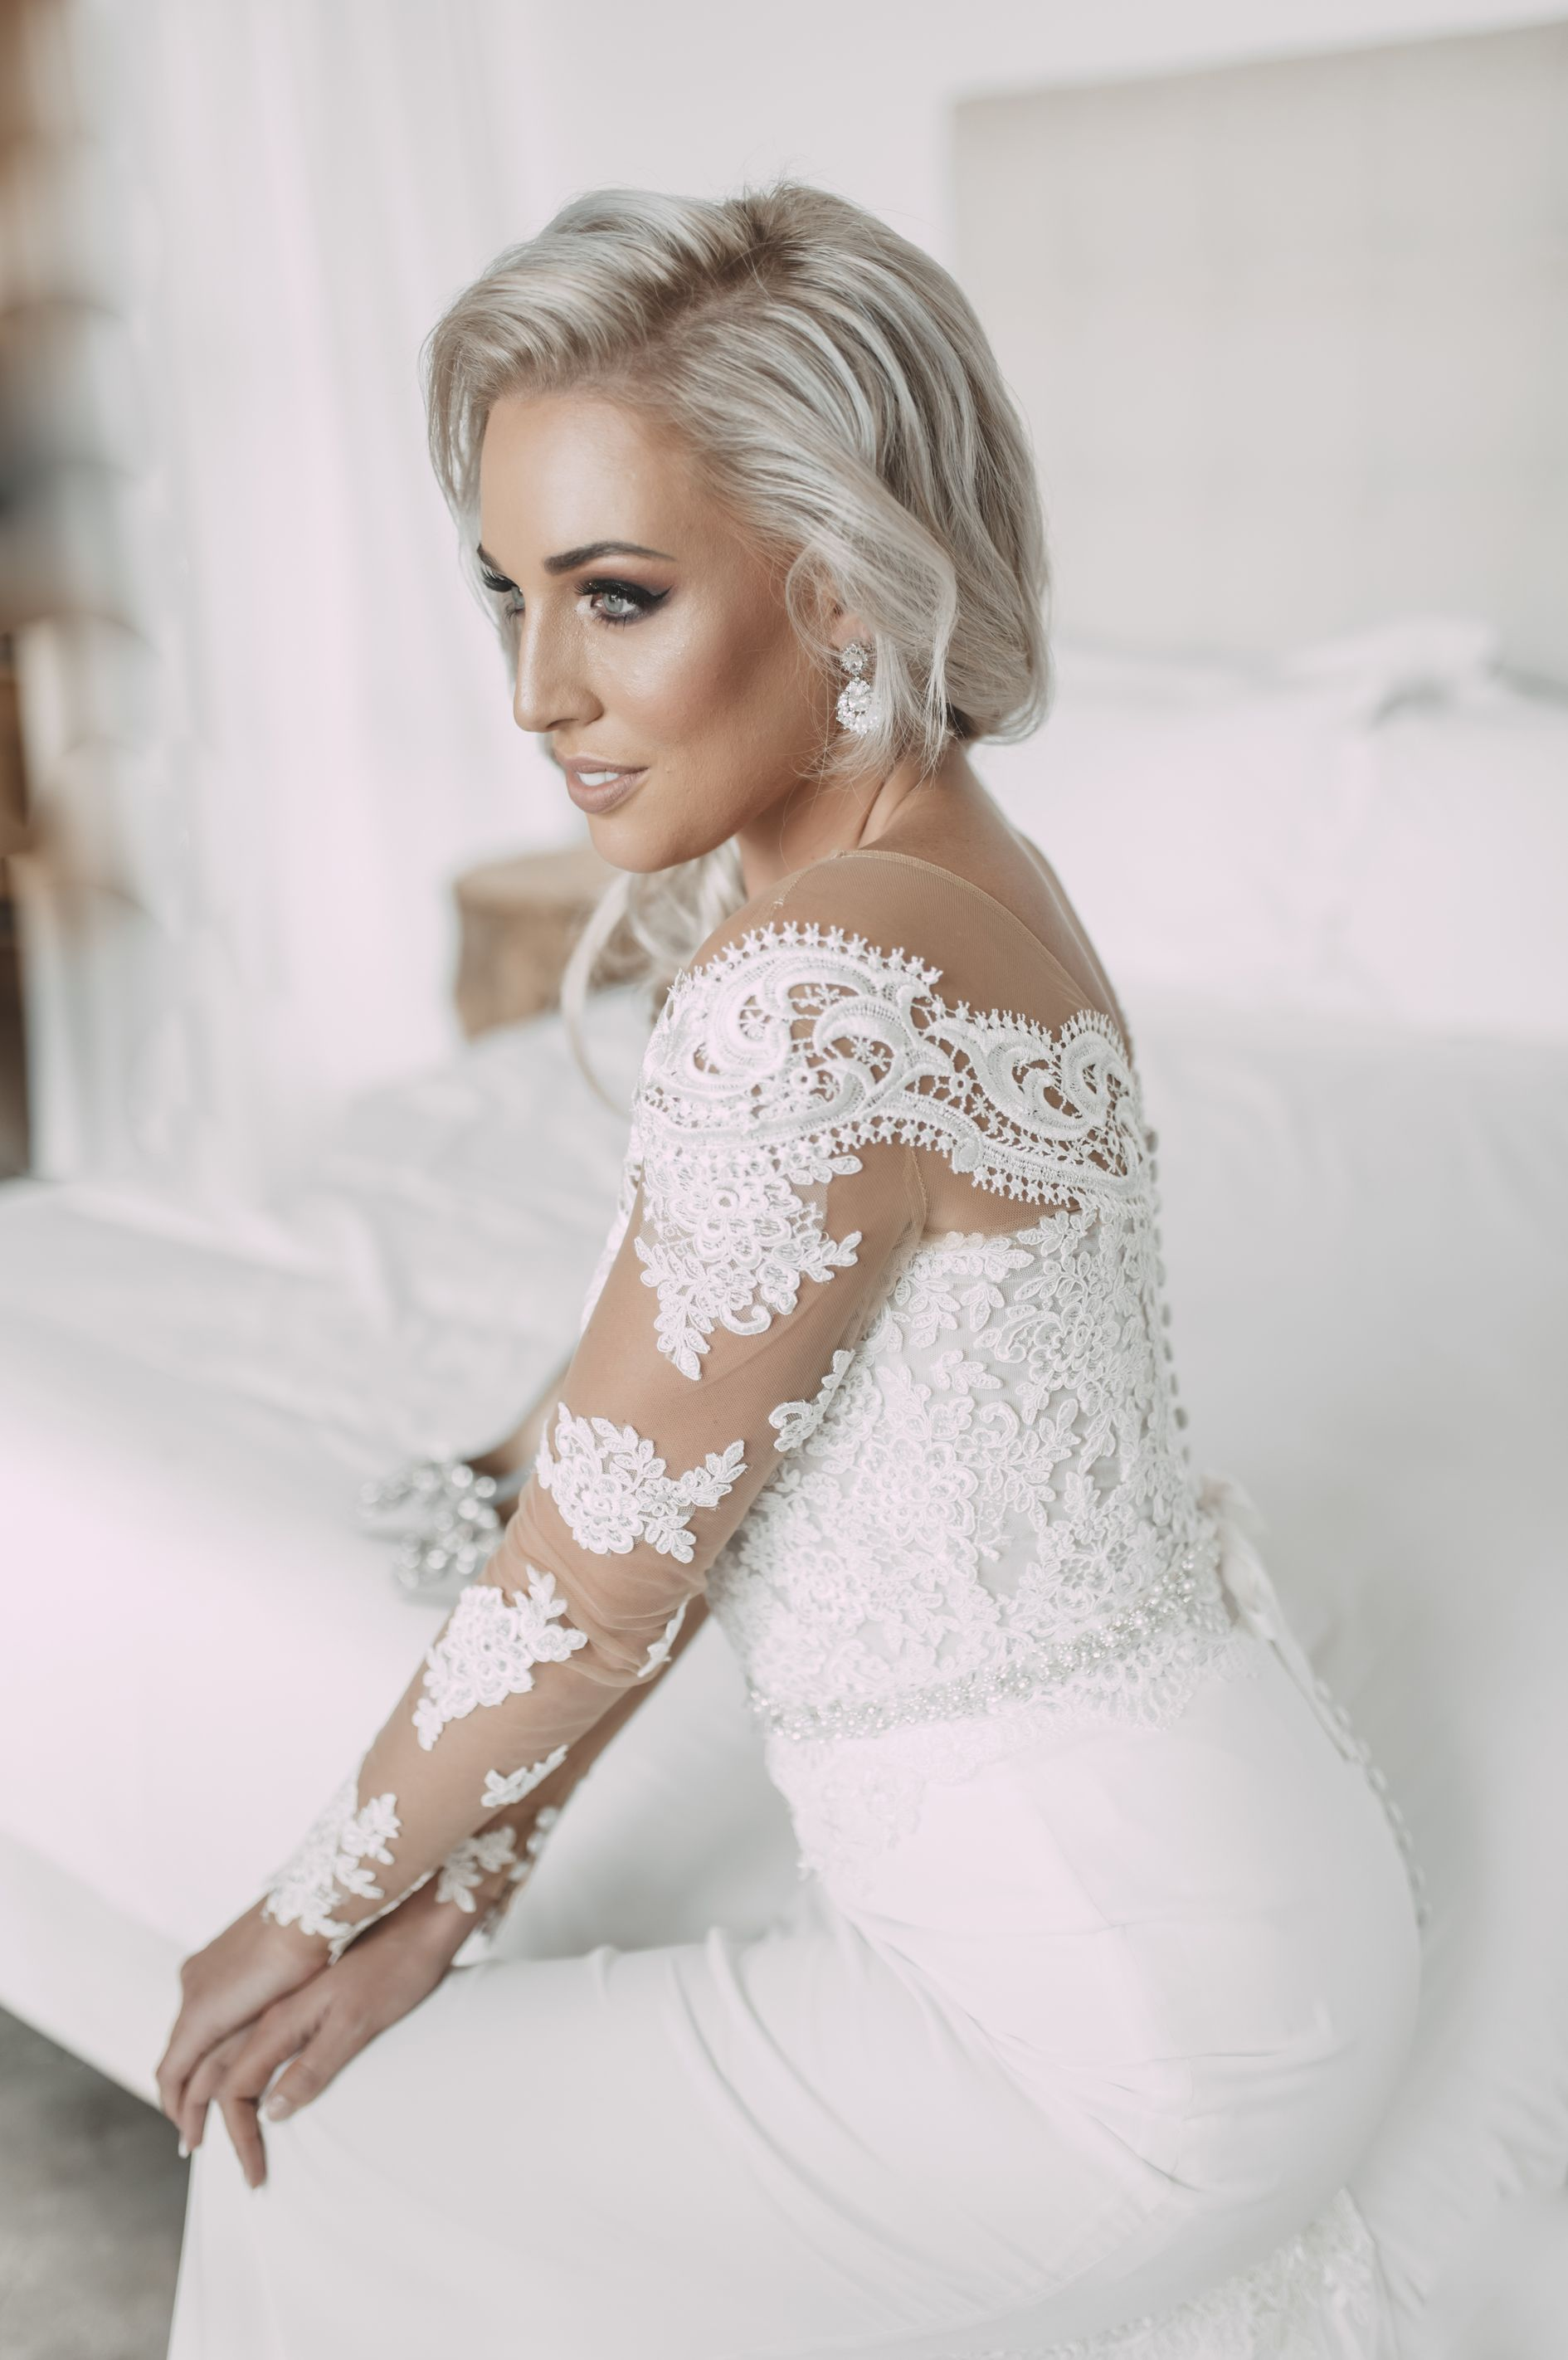 Morning wedding dresses  How to have the best wedding morning EVER Leah Rykaart  Blonde